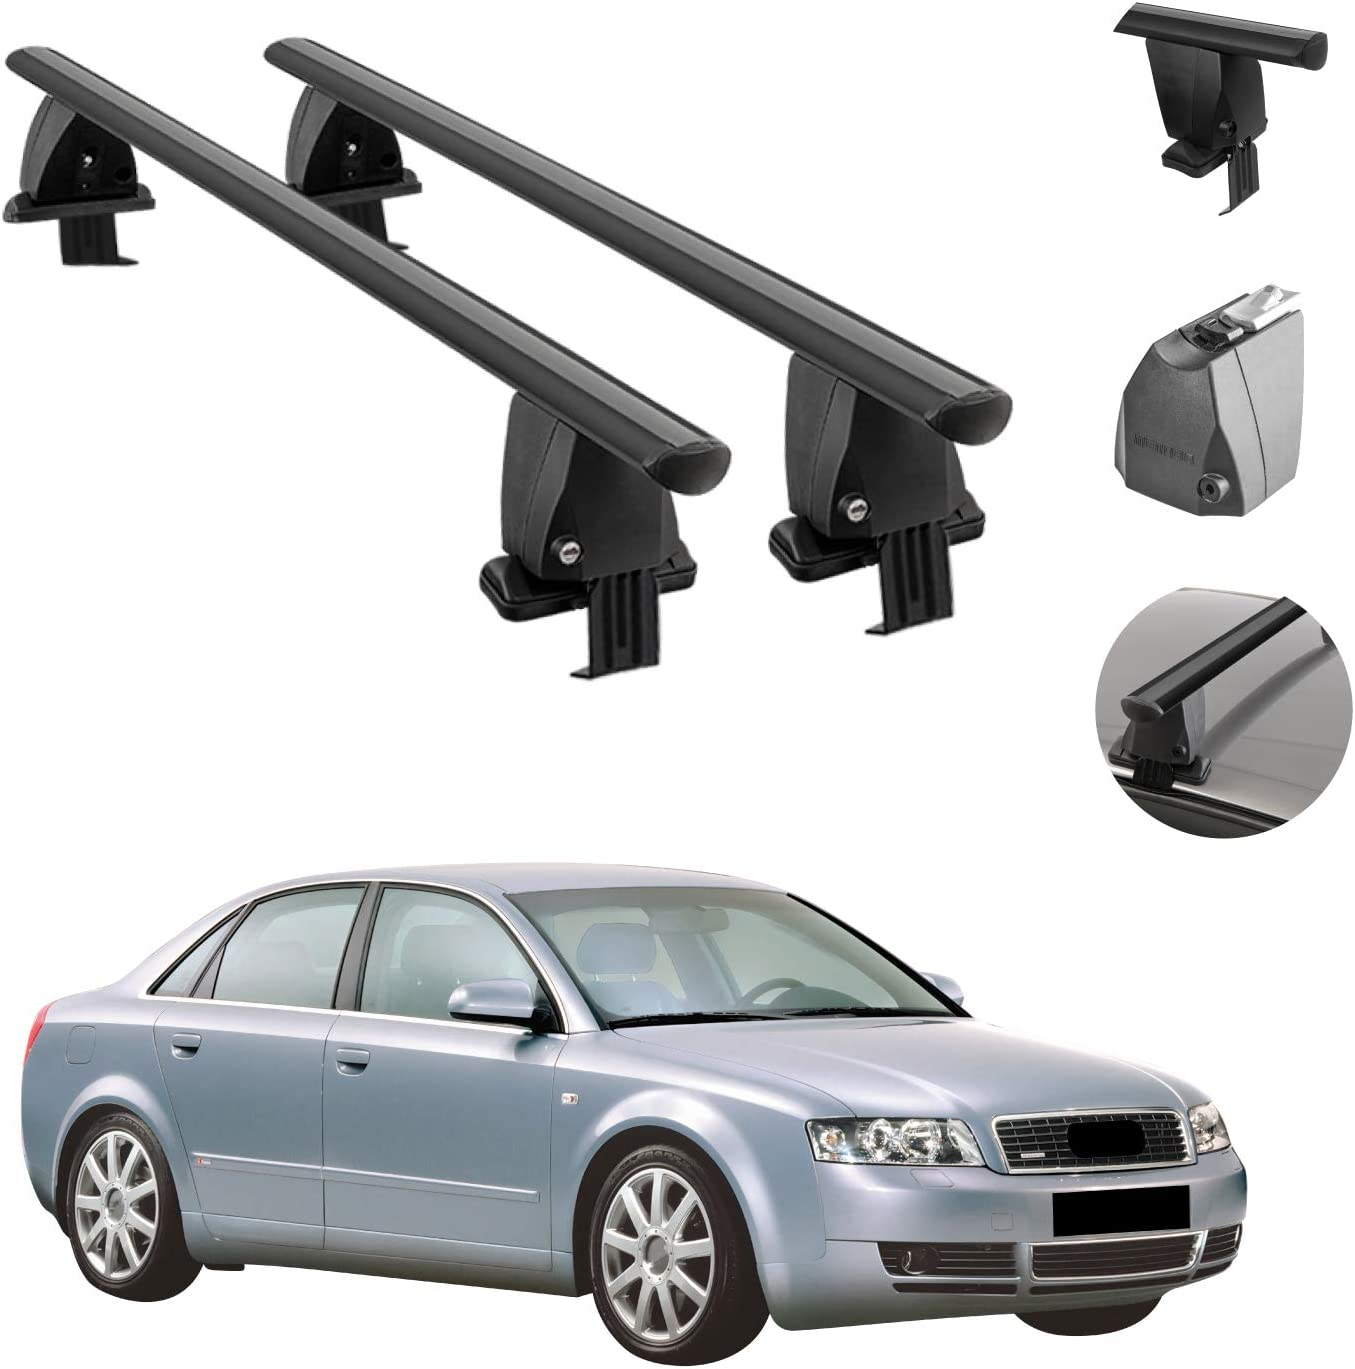 Roof Max 85% OFF Rack Latest item Cross Bars Lockable Sm Compatible Carrier with Luggage